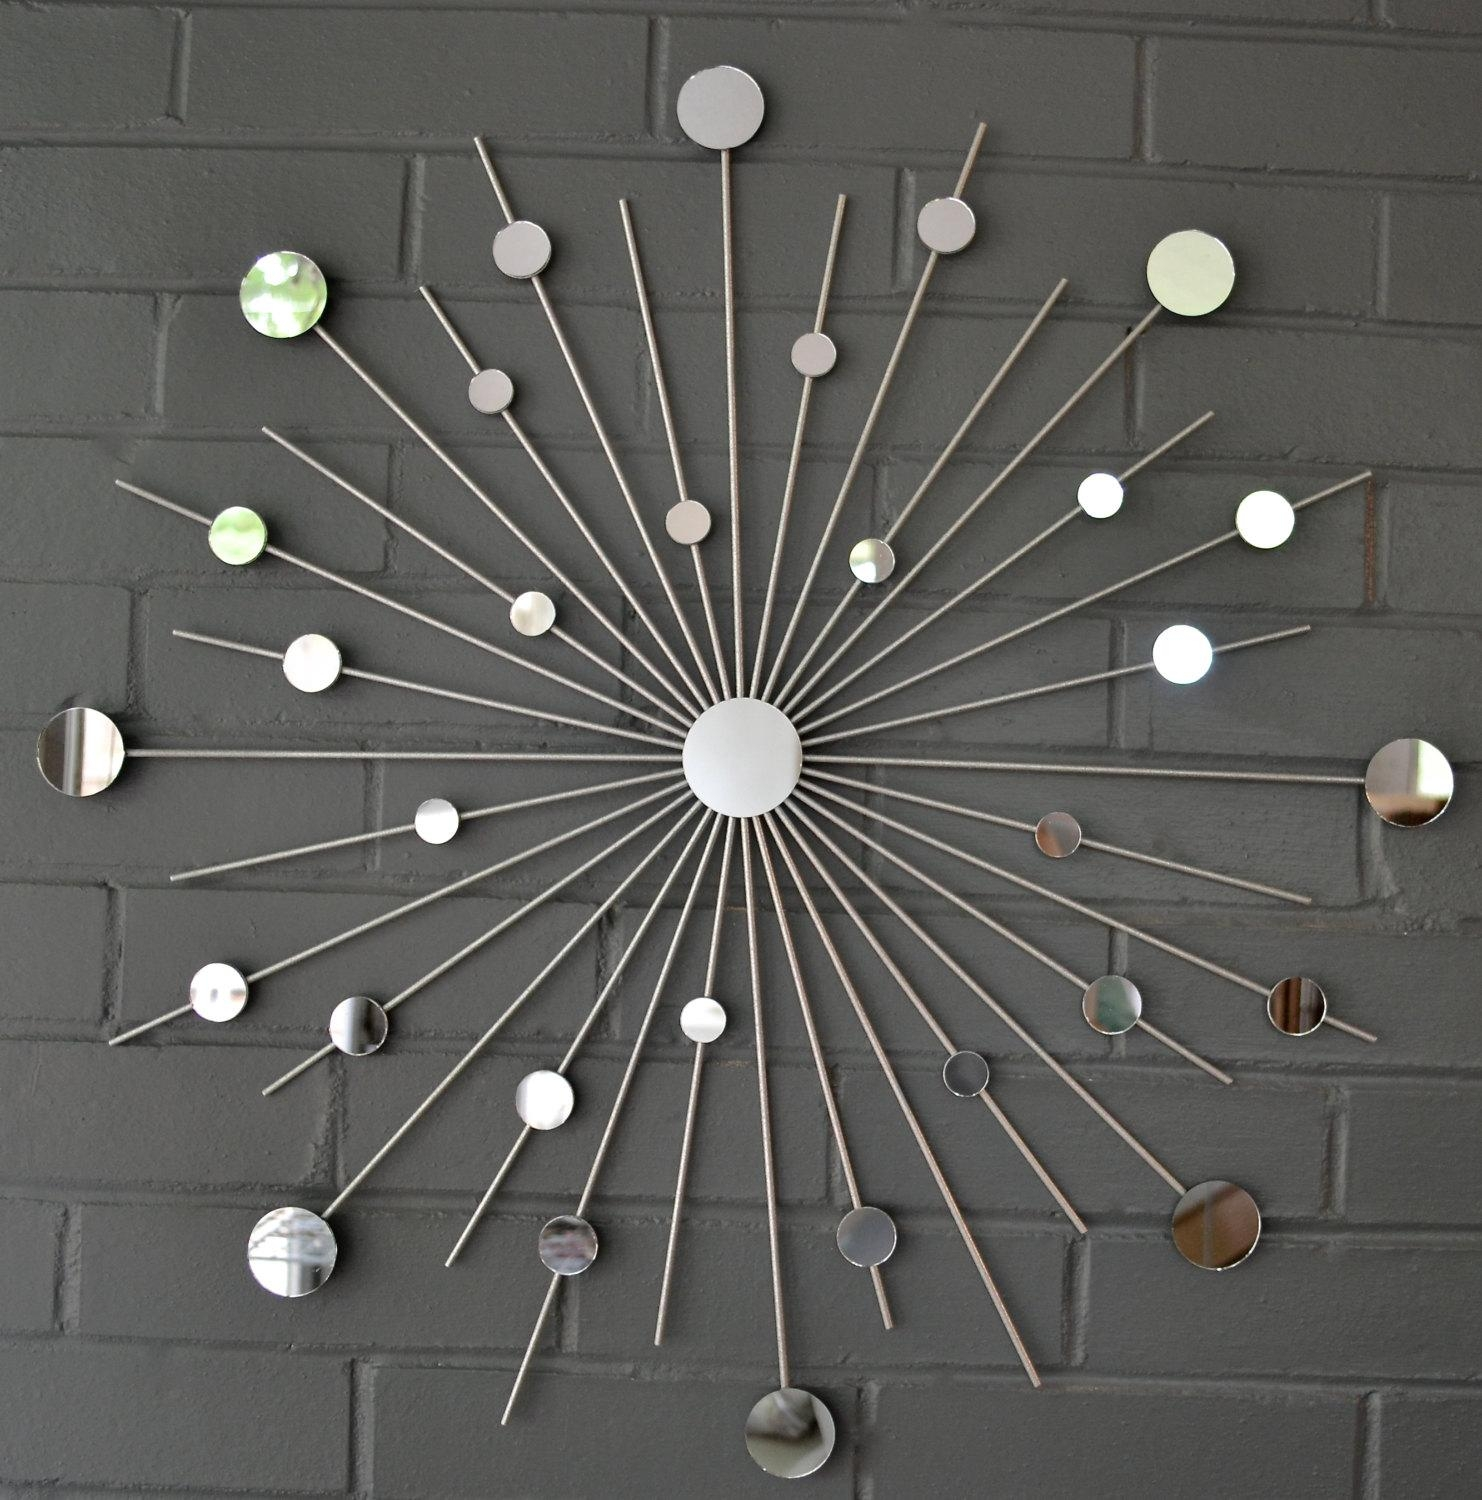 Decorating: 24 Starburst Modern Metal Wall Art Mirror Retro For With Regard To Silver Starburst Wall Art (View 10 of 20)